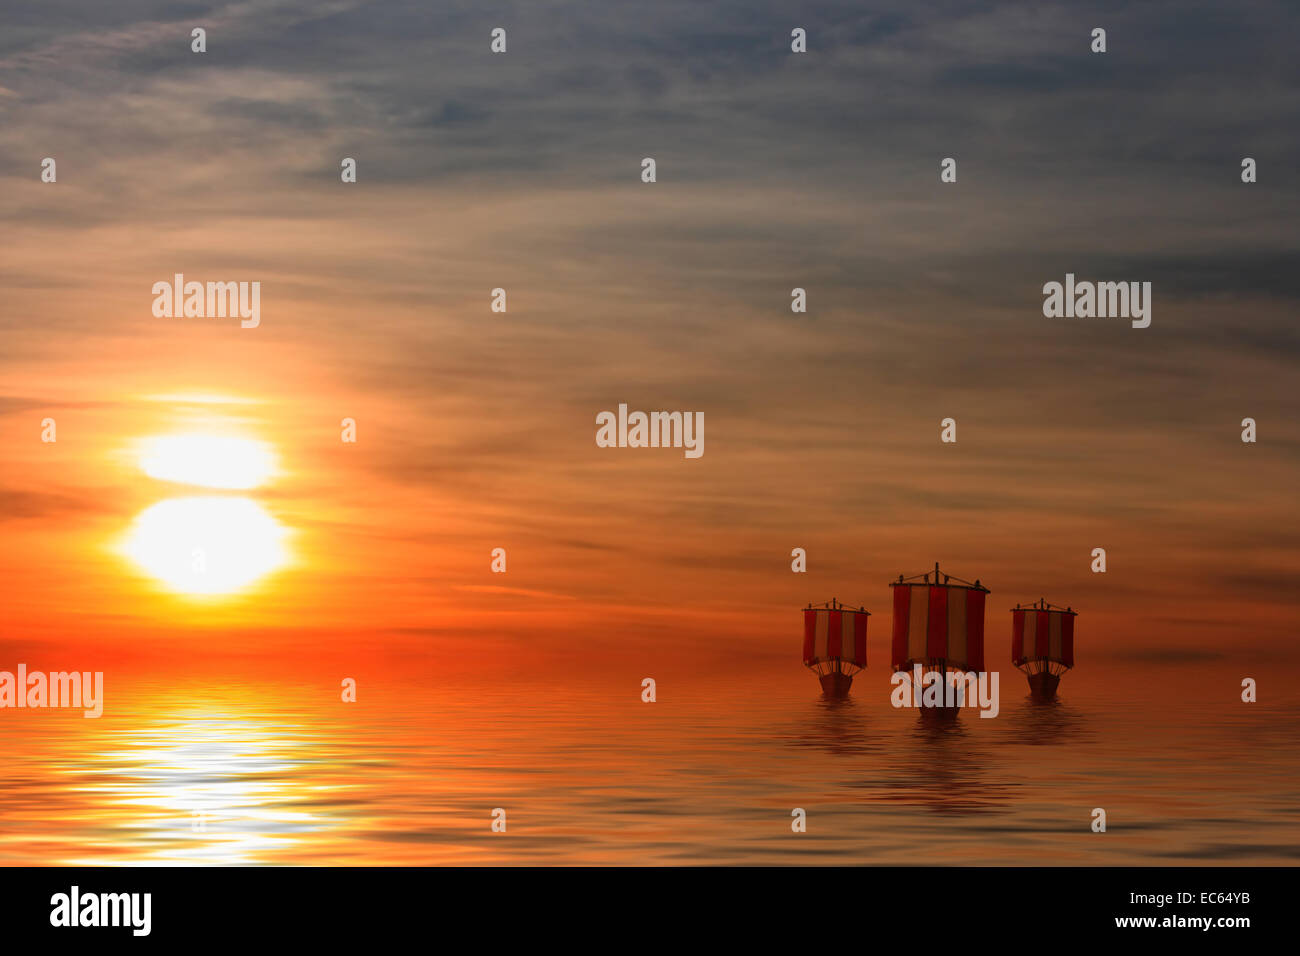 Sunset over the sea with Viking ships - Stock Image